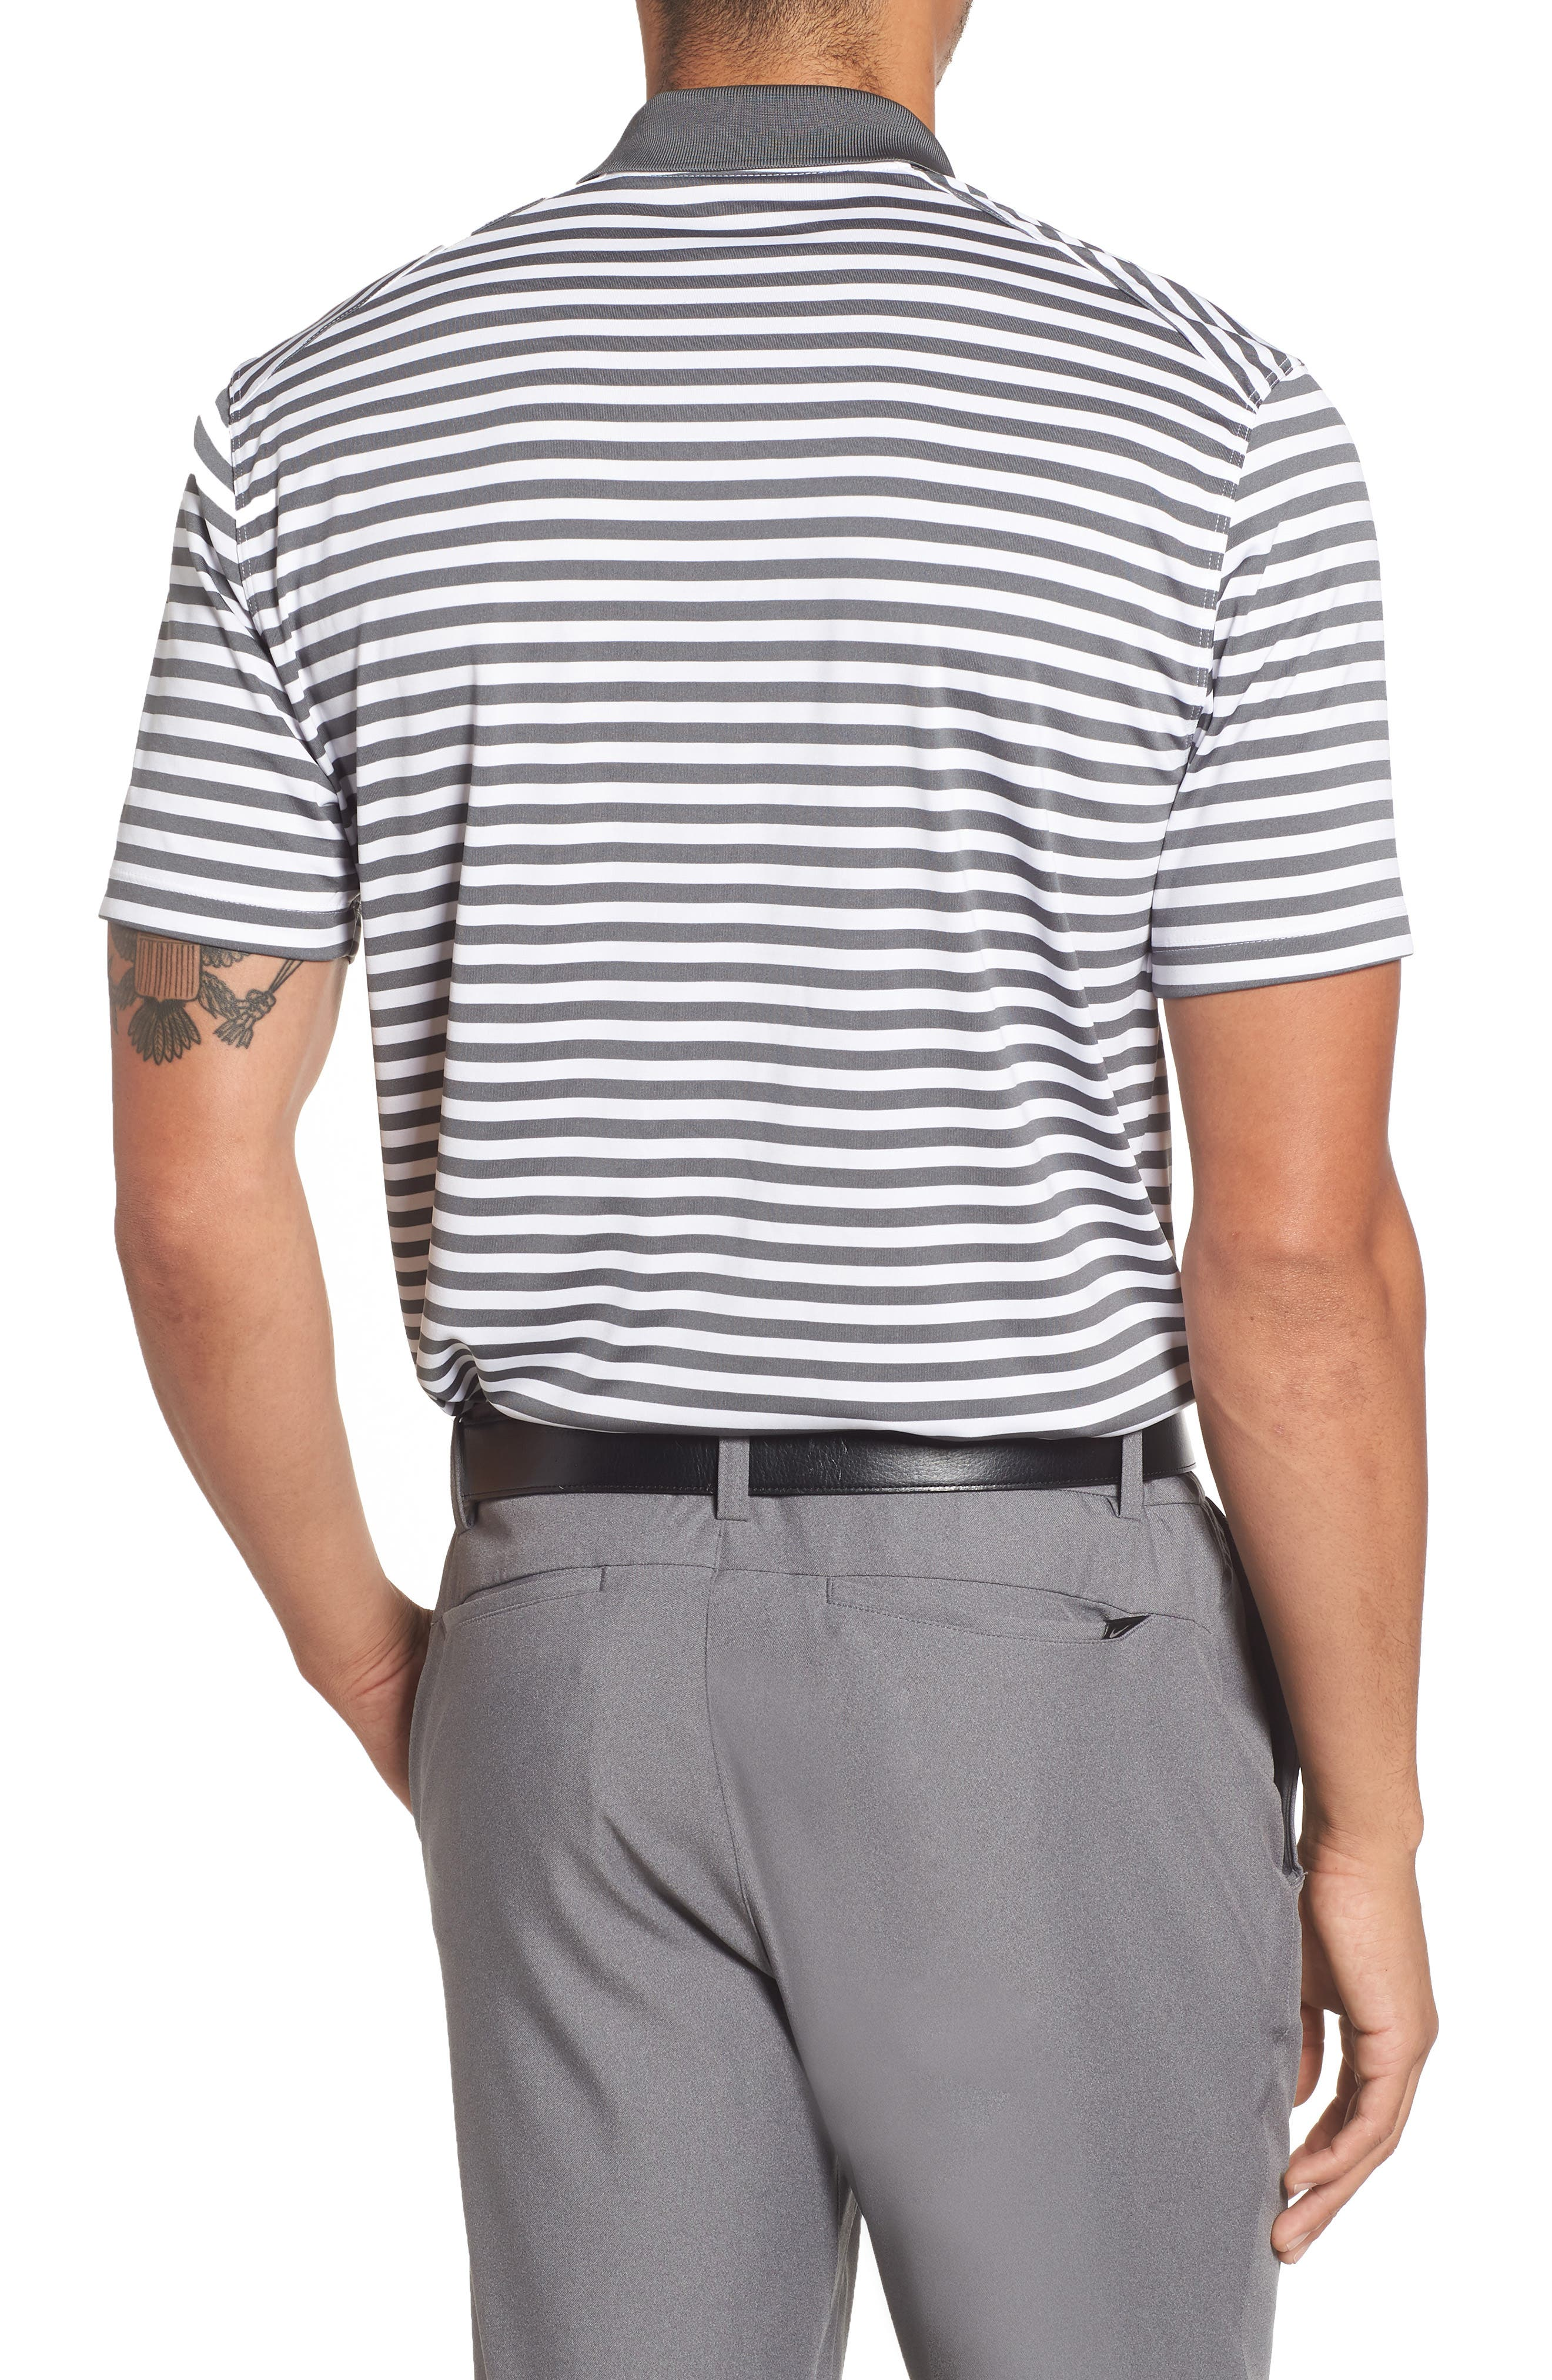 NIKE,                             Dry Victory Stripe Polo,                             Alternate thumbnail 2, color,                             021